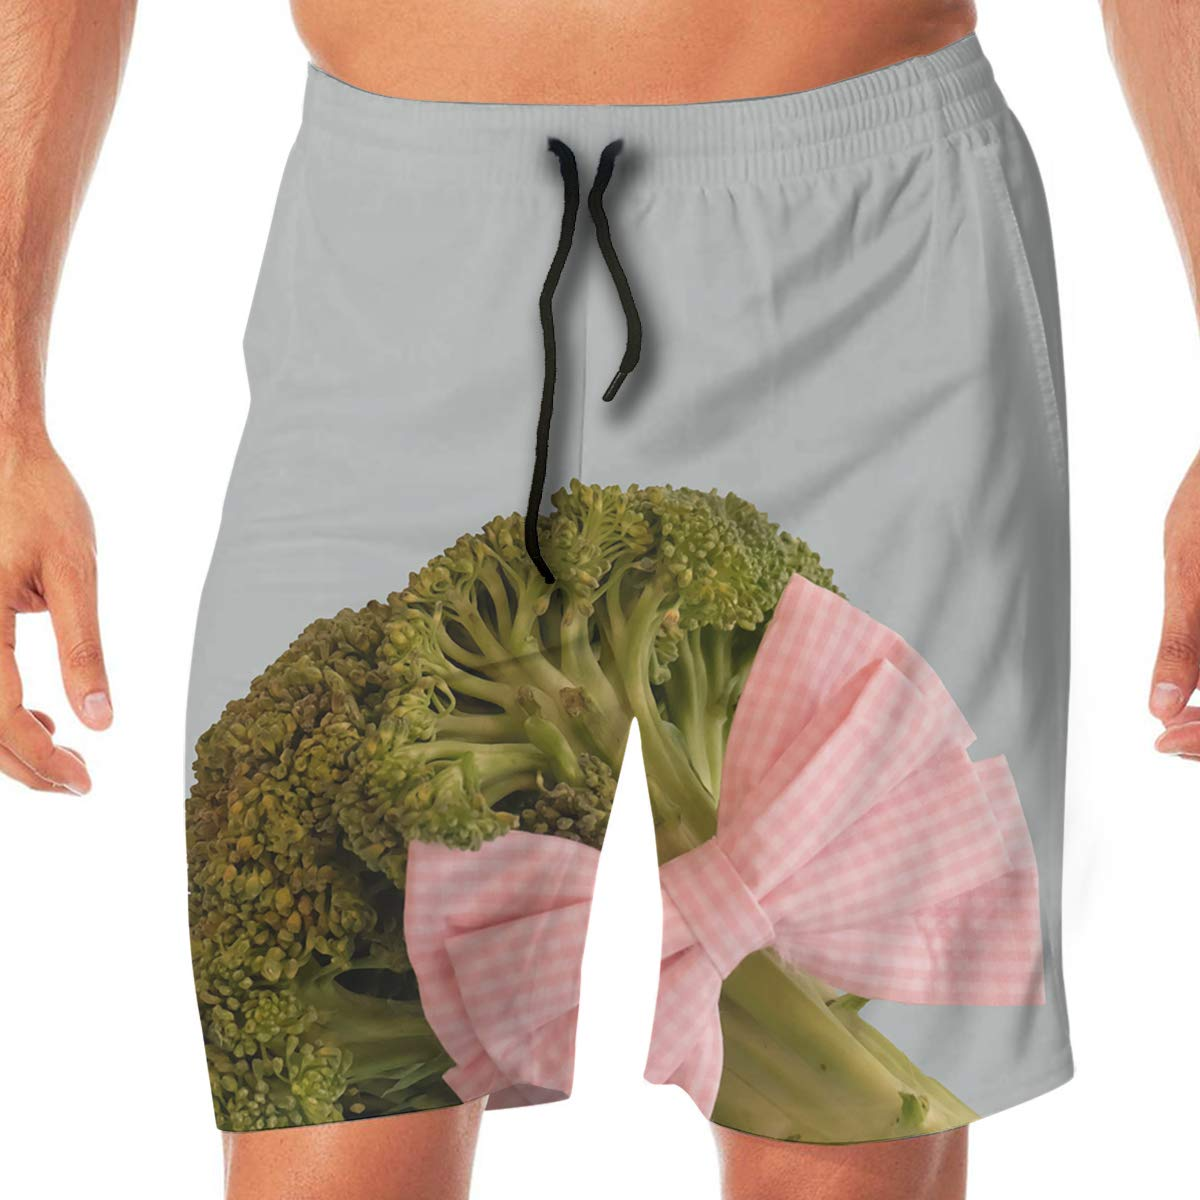 SEXTDSFD Broccoli Bow Mens Running Casual Short Beach Pants Swim Trunks Drawstring Board Shorts Swimwear